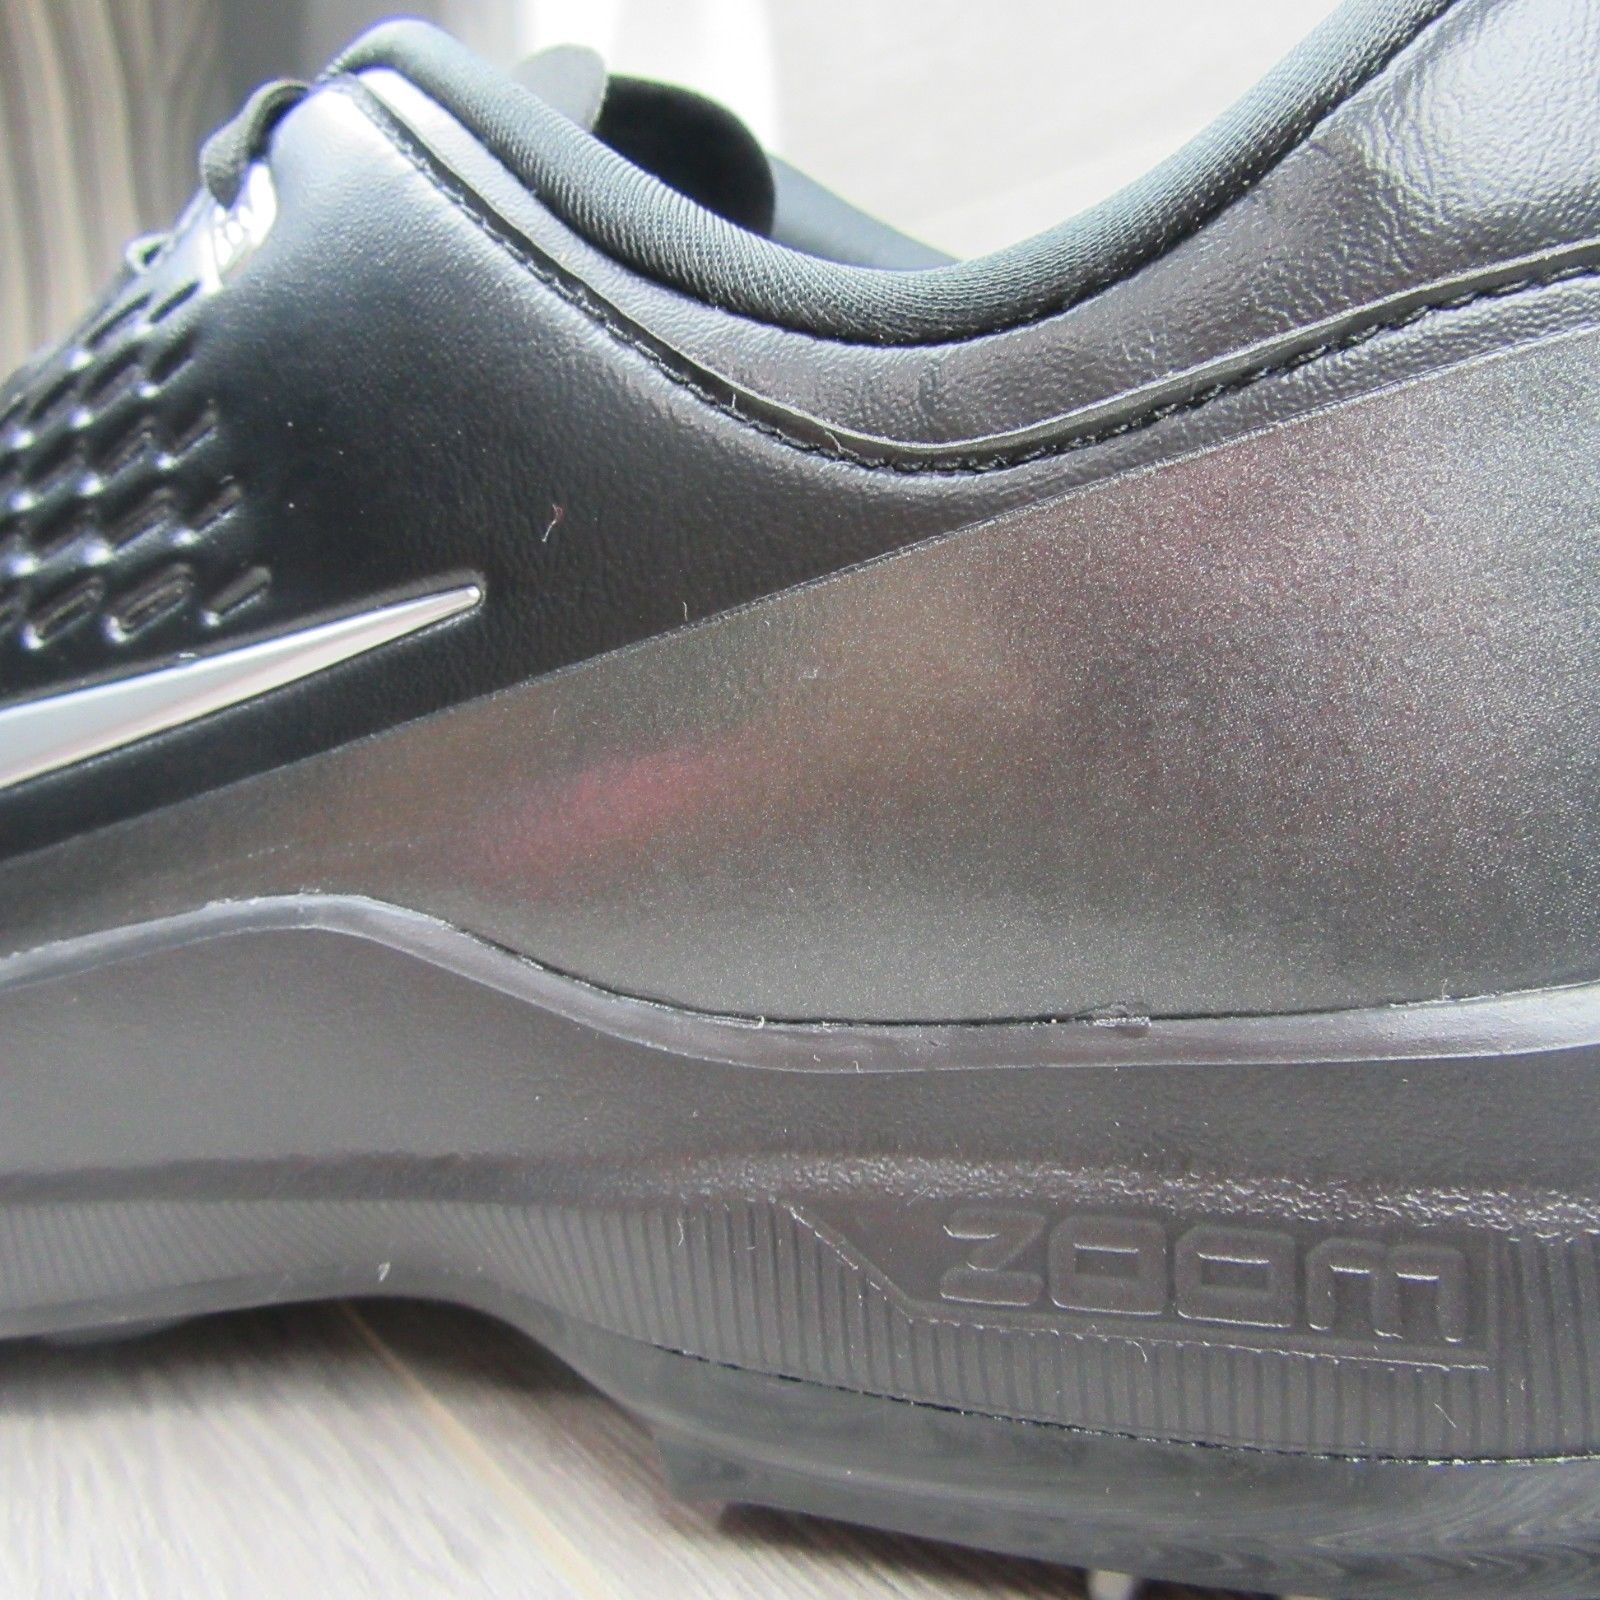 e09686f159209 Nike Golf Air Zoom TW71 Tiger Woods Cleats Size 11 Mens Black Silver AA1990  002